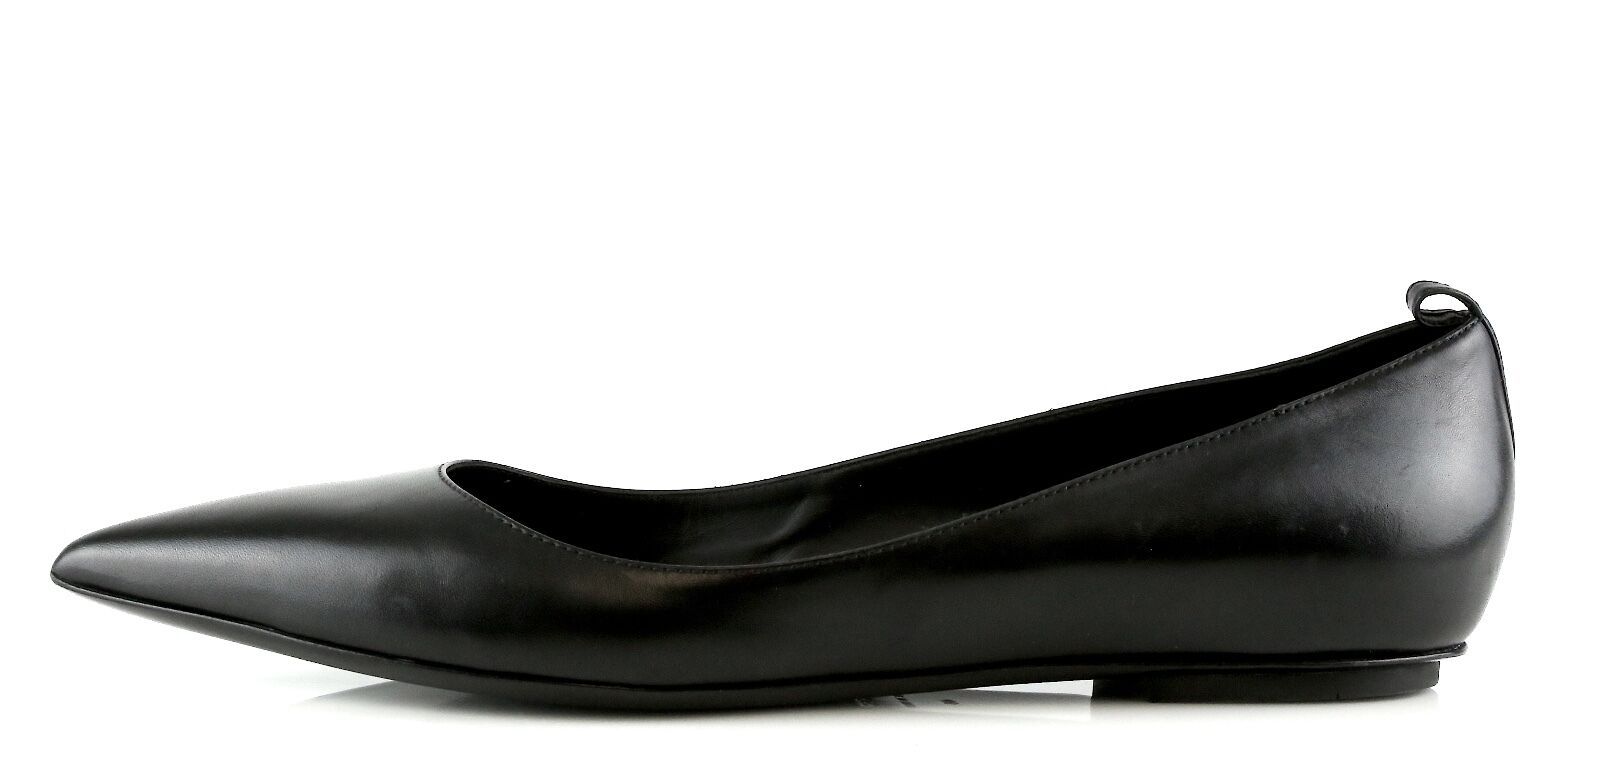 Tom Ford Black Leather Ballerina Padlock Ankle Strap Flats 8866 Size 40 EU